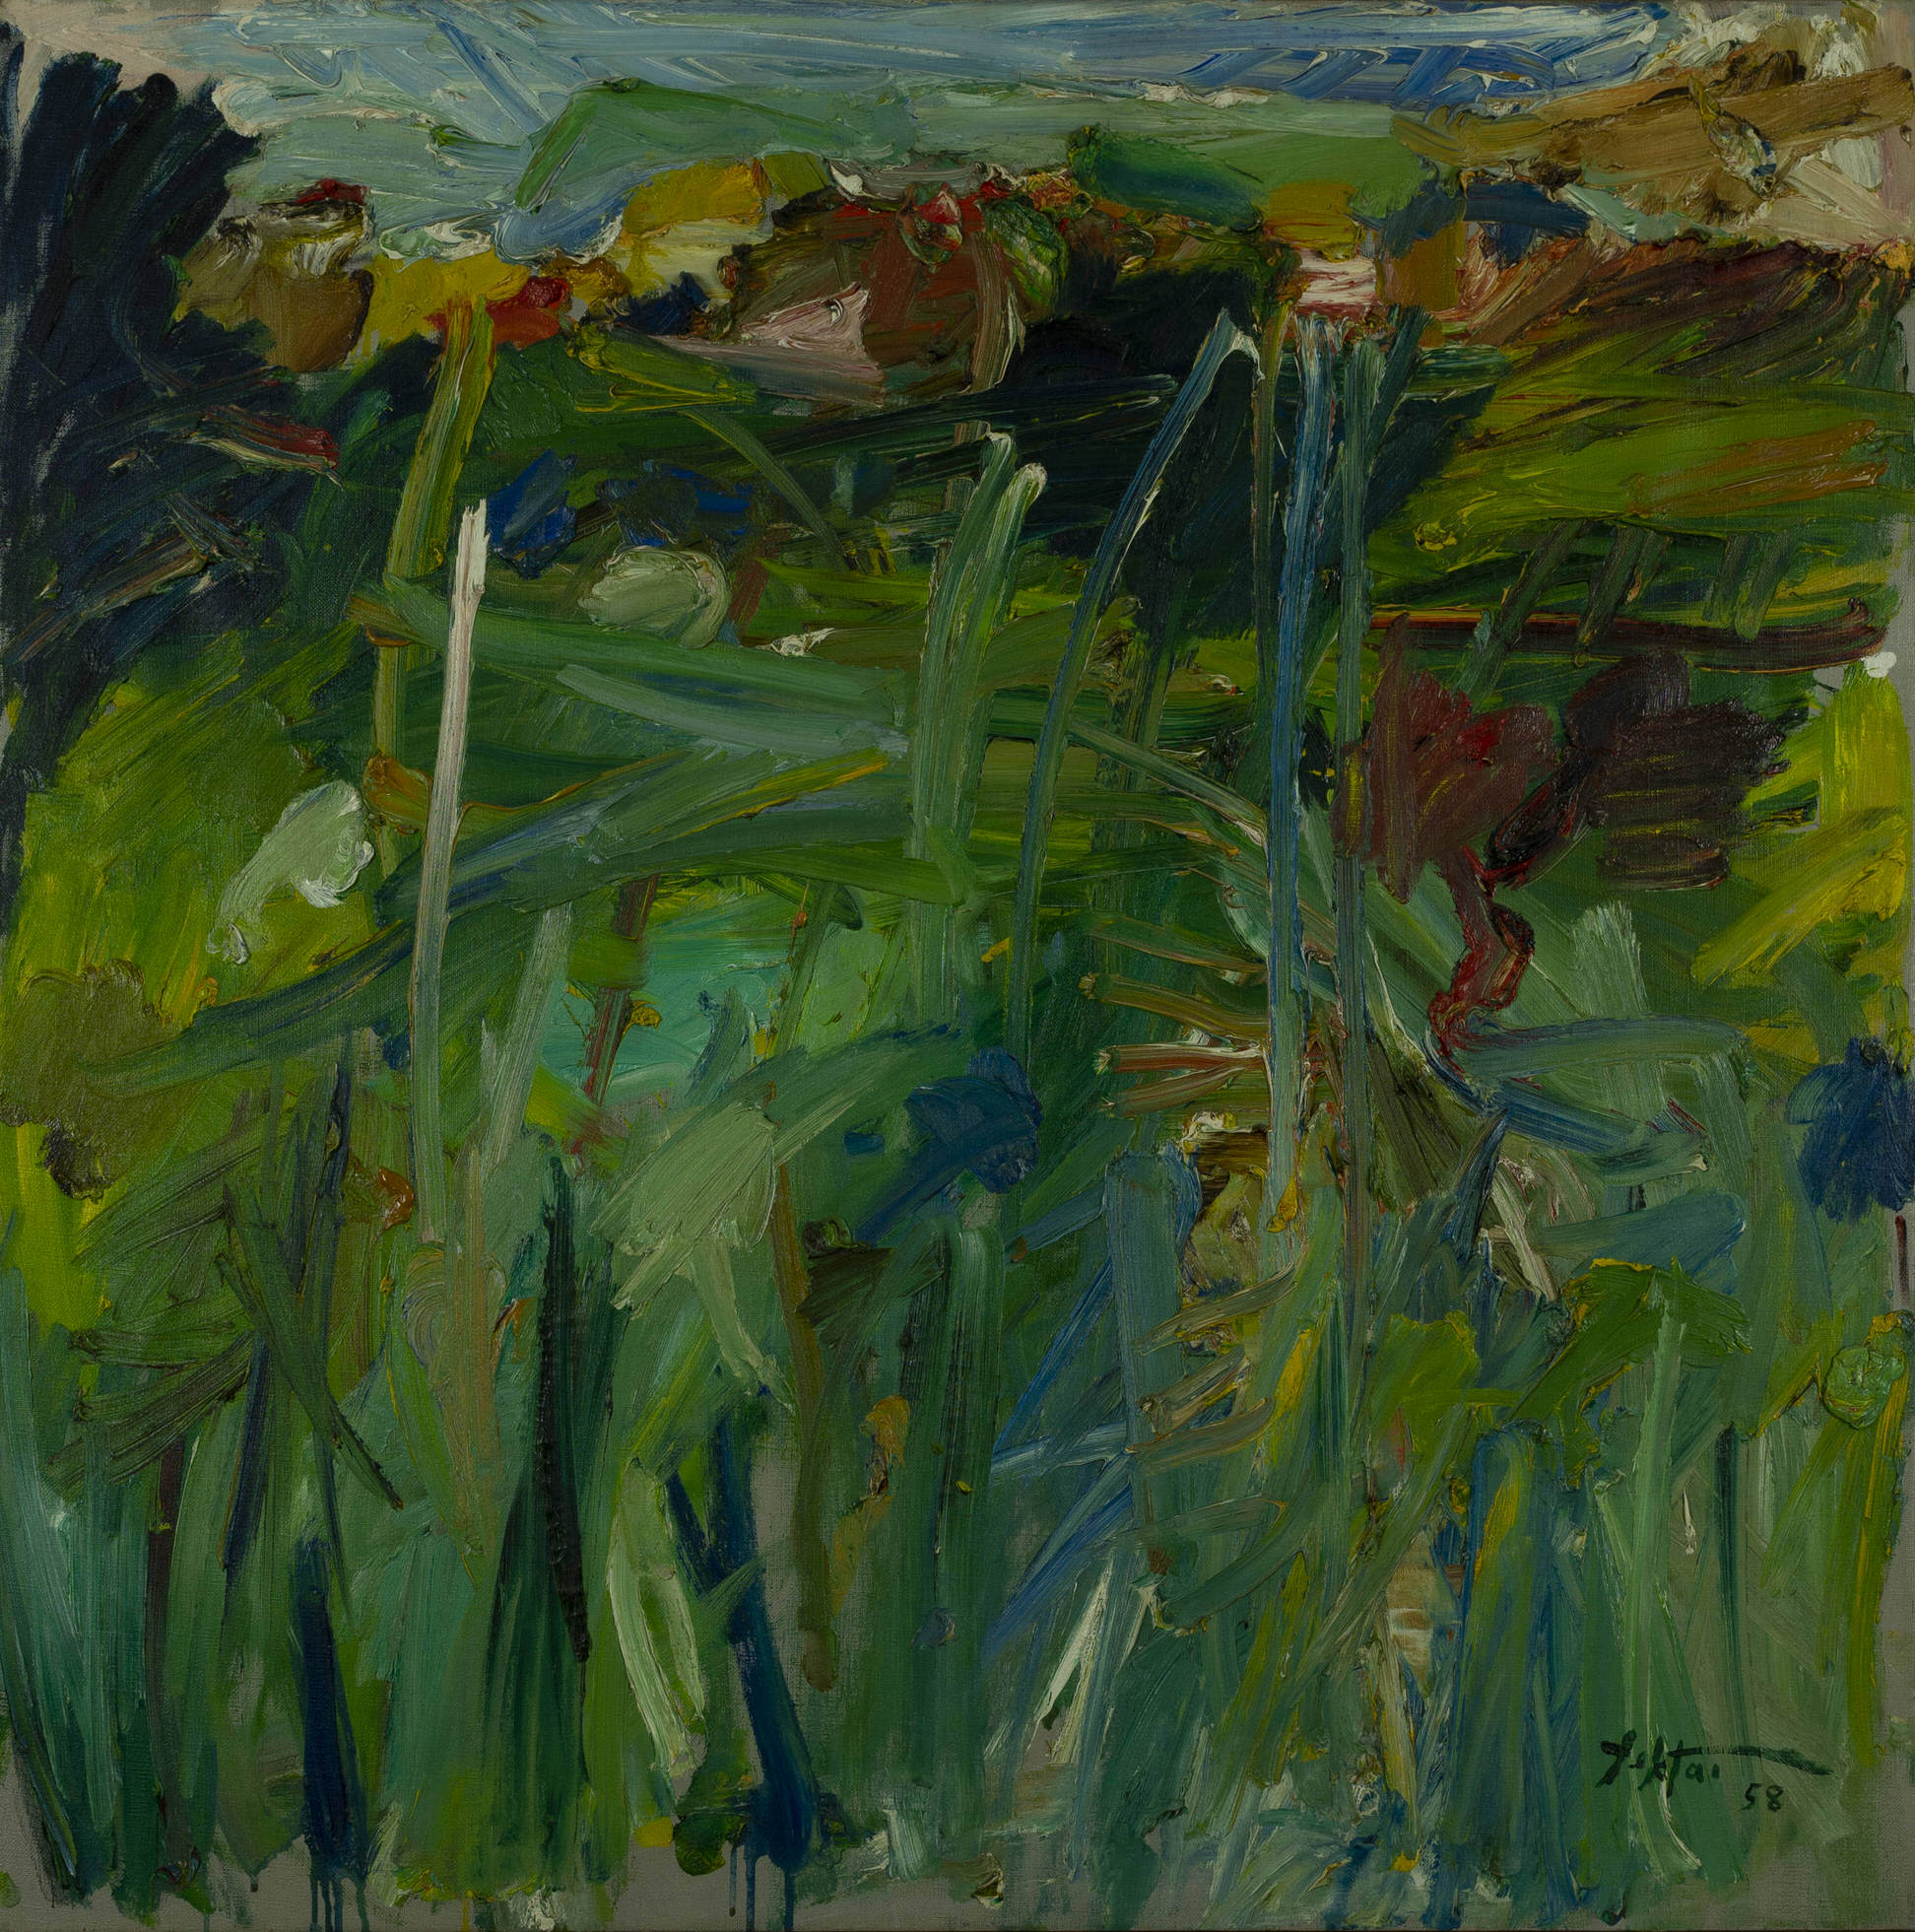 Manoucher Yektai (American-Iranian, B.1921) Positano Landscape (#3). Sold For $75,000 At Partner Capsule Gallery Auction